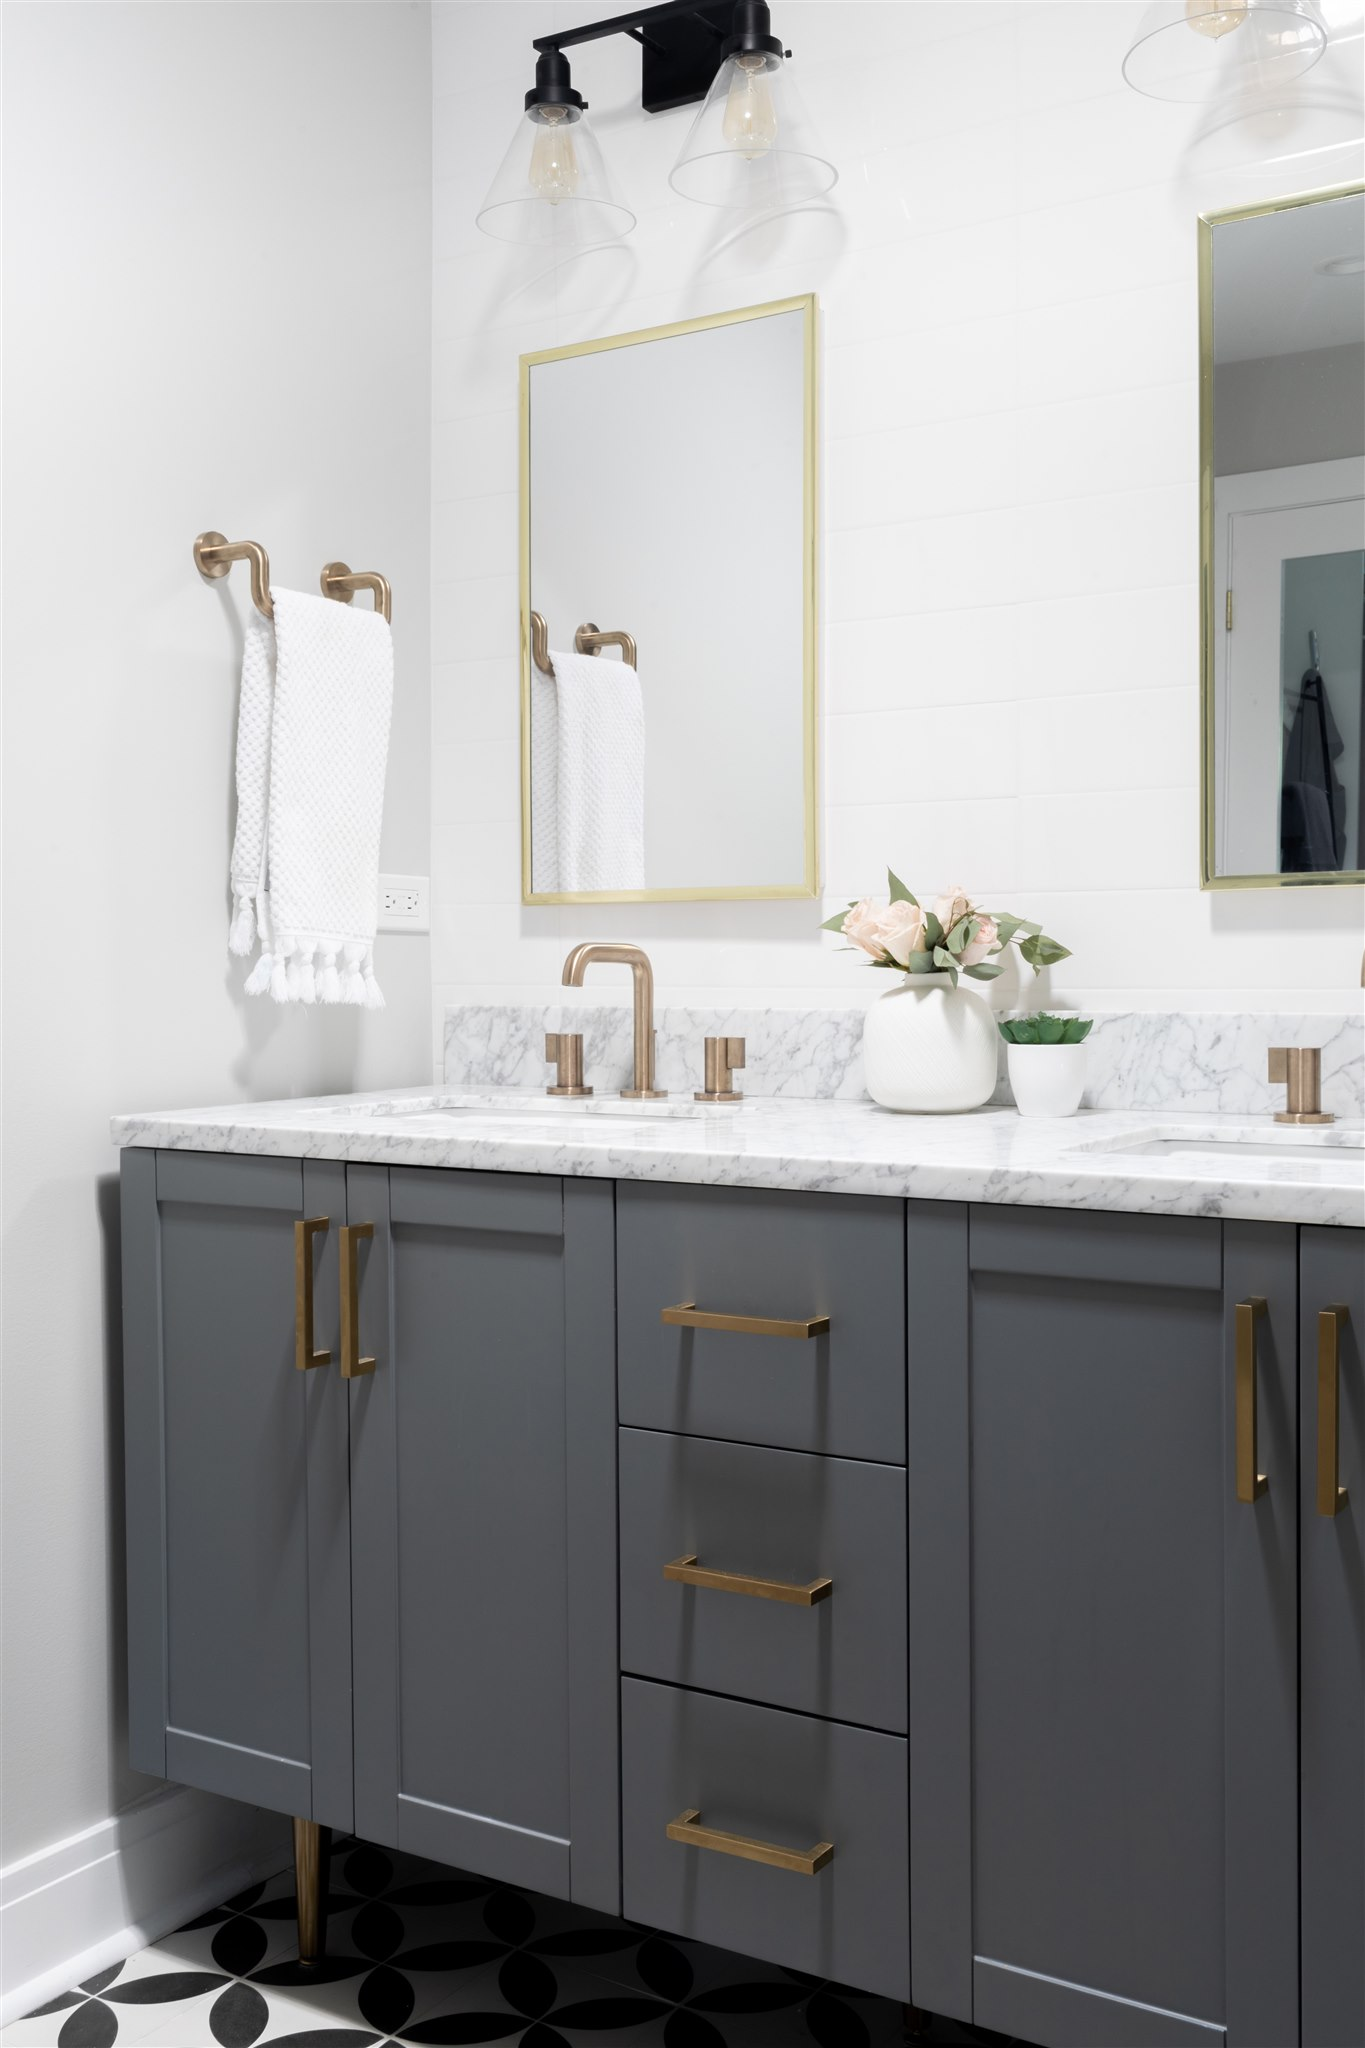 Above the vanity, there's a skylight that floods the space with natural light. The perfect spot for doing makeup!